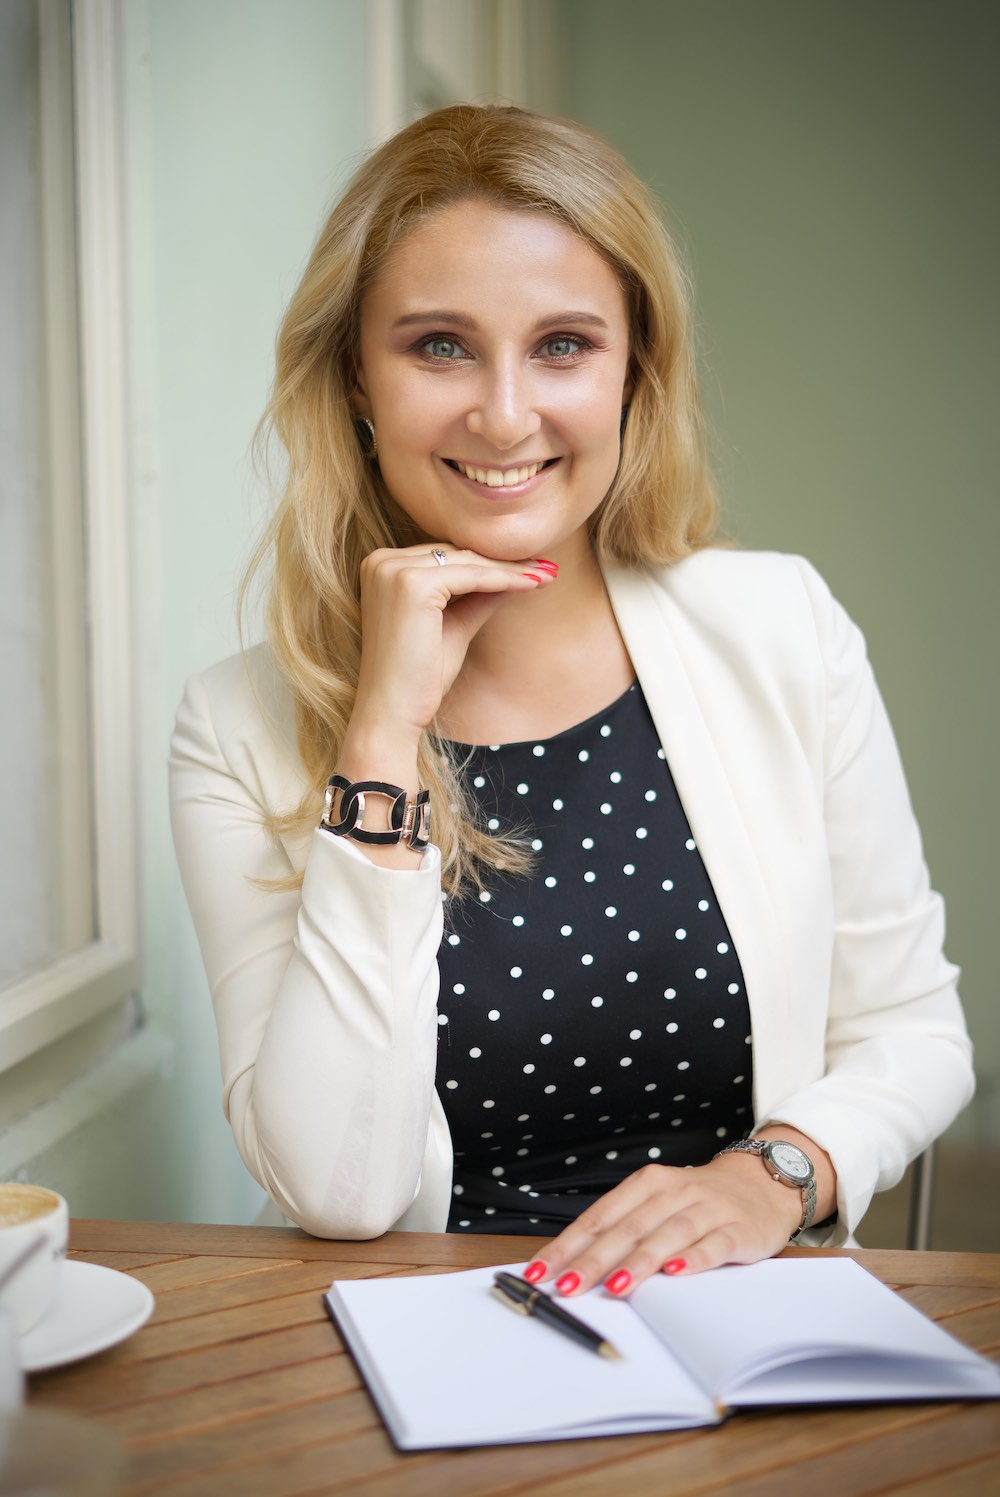 profilová fotografie podnikatelky │ profile photography of a businesswoman